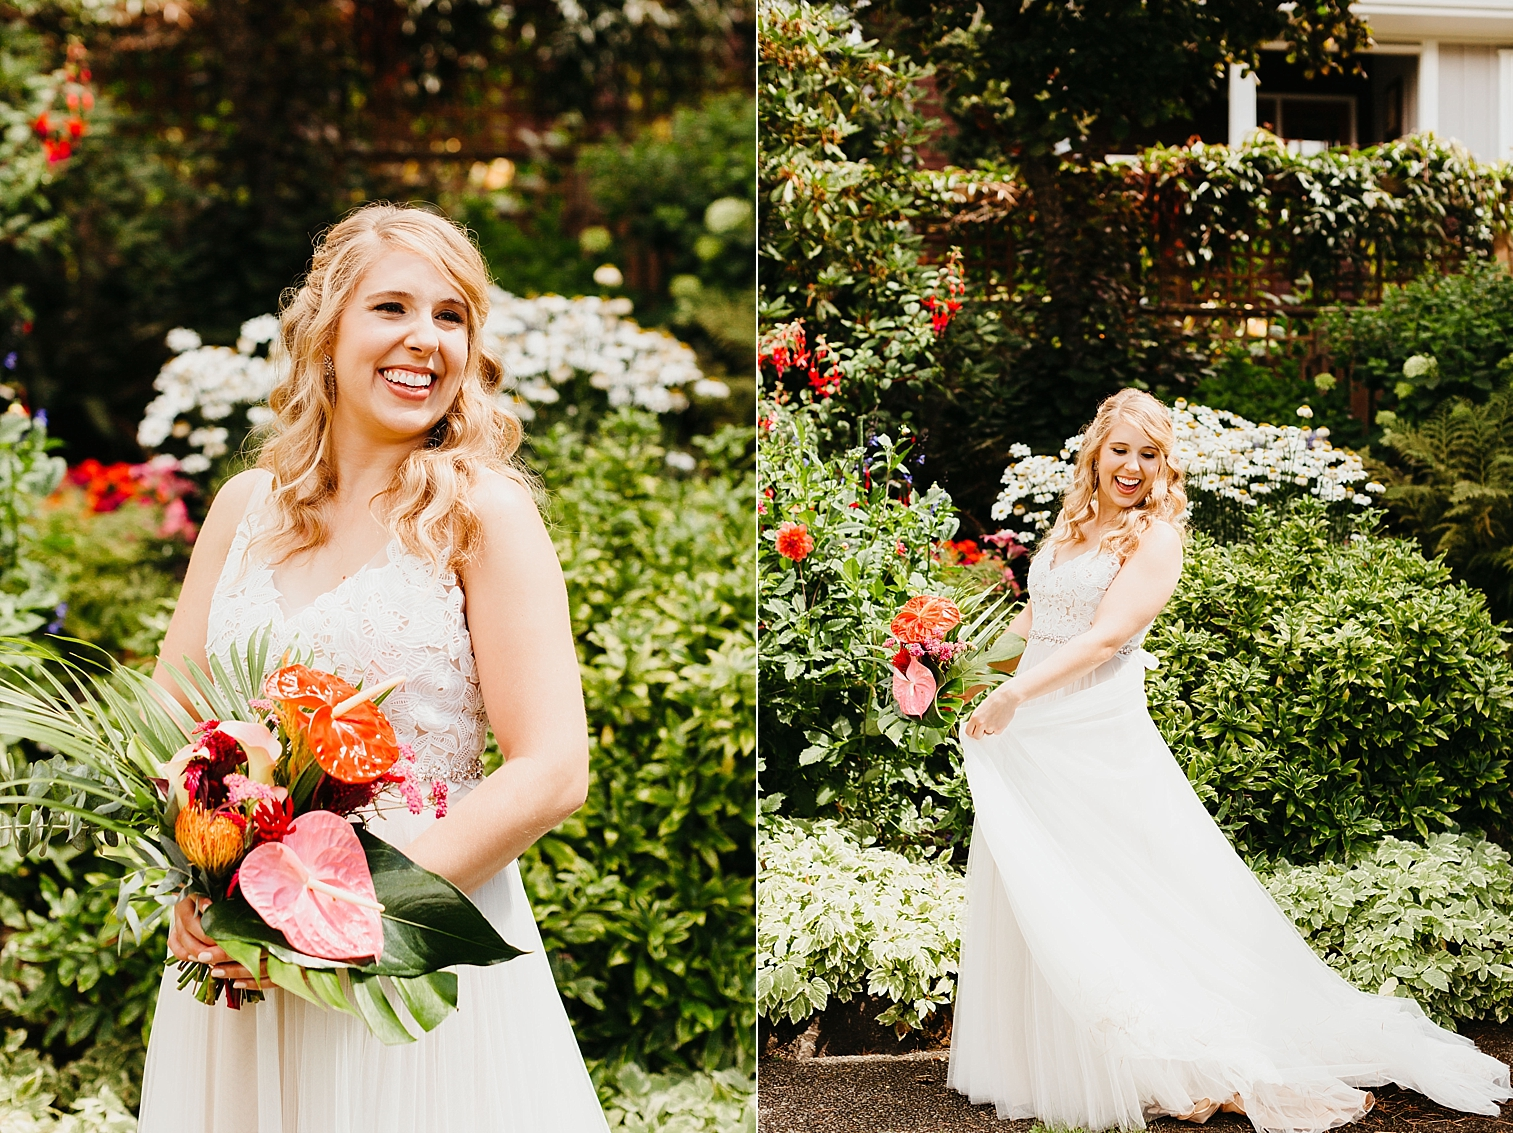 Tropical-Vintage-Within-Sodo-Wedding-22.jpg